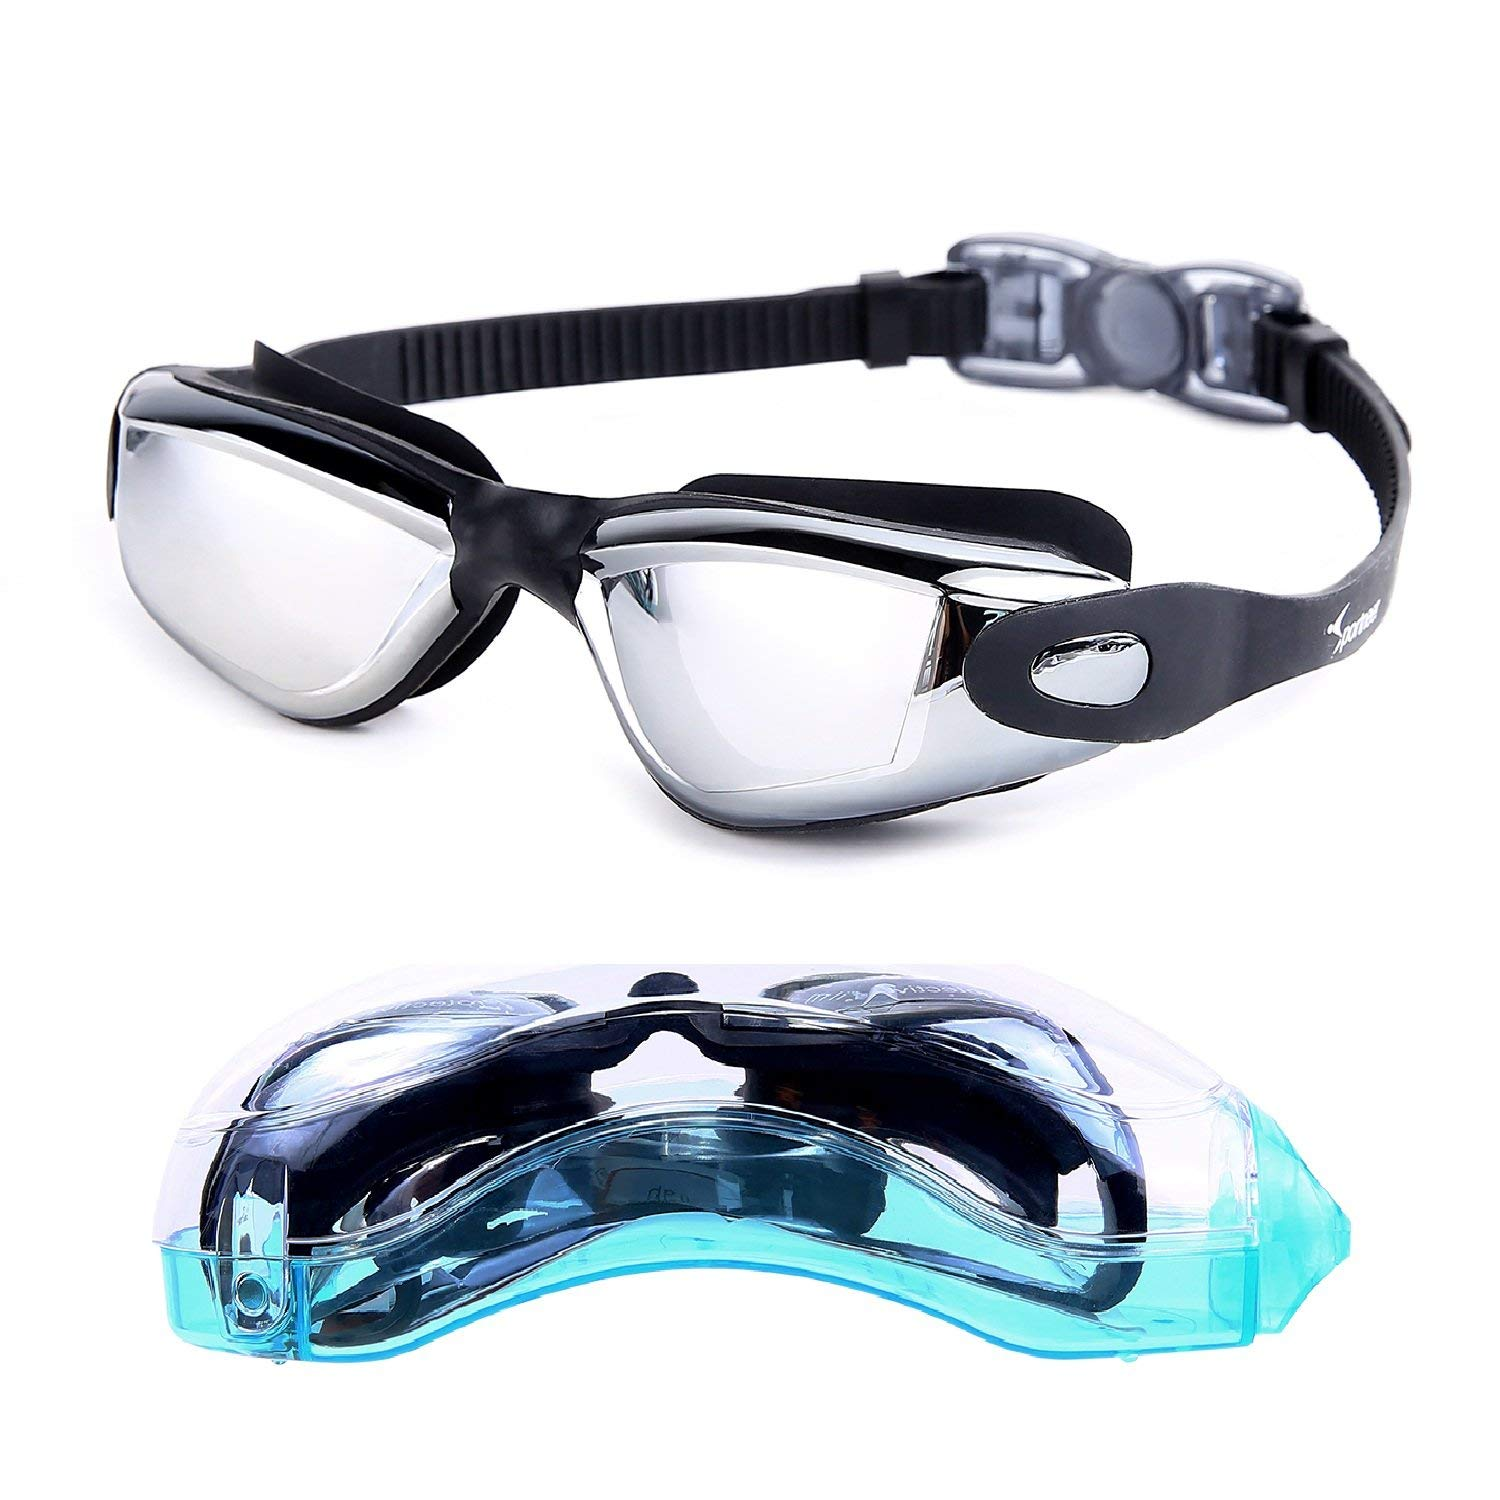 Sportneer Swim Goggle, Anti Fog and UV Protection Swimming Goggles for Adult Men Women Youth Kids Child by